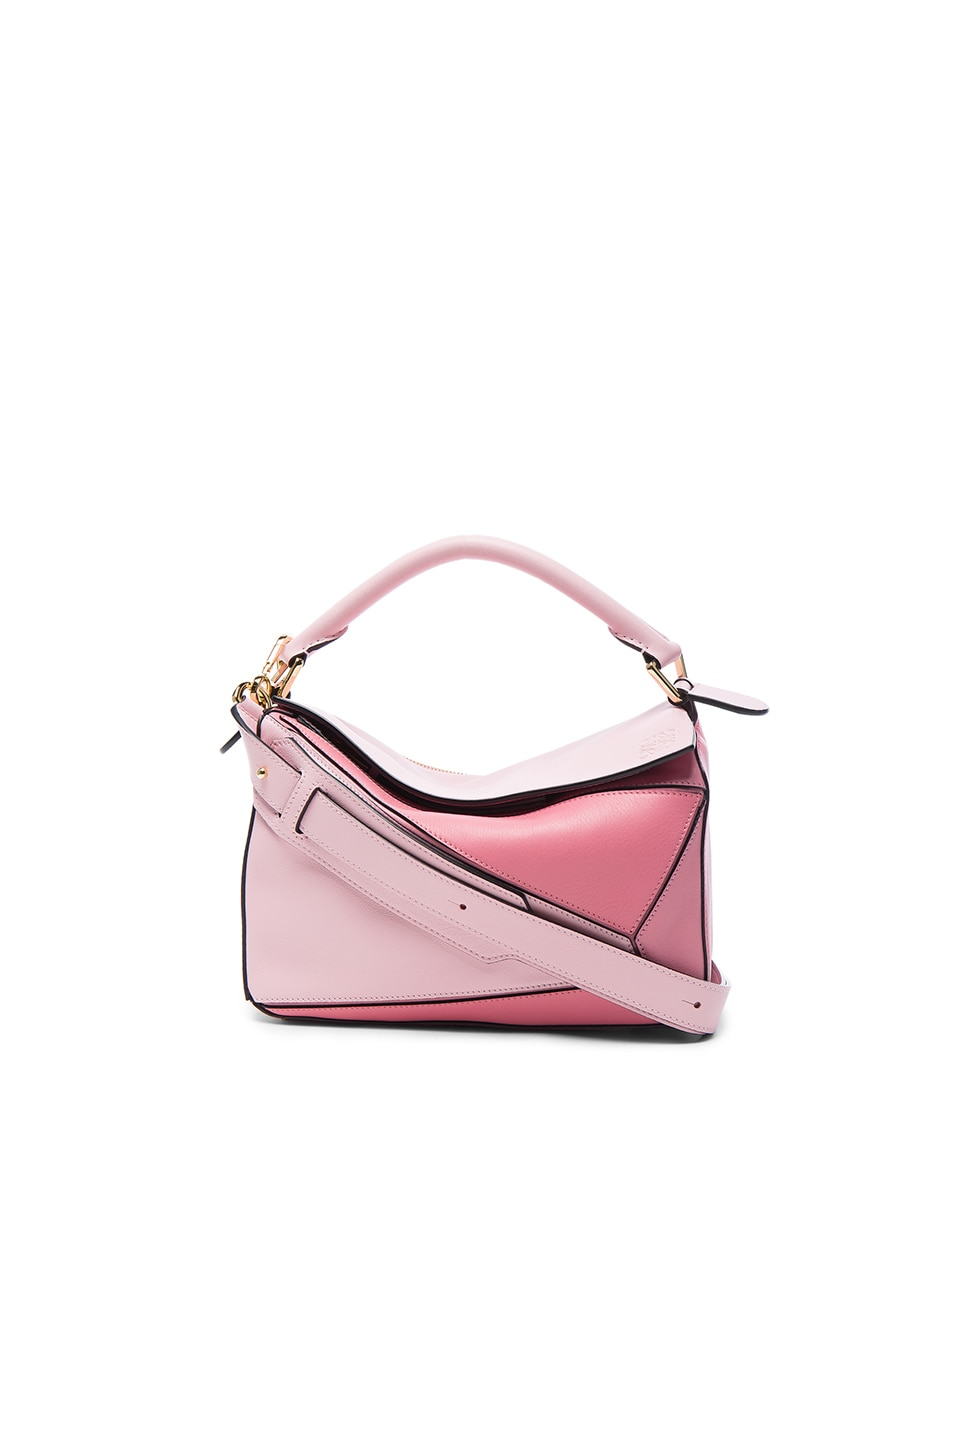 5450eb266afd9 Image 1 of Loewe Puzzle Small Bag in Soft Pink